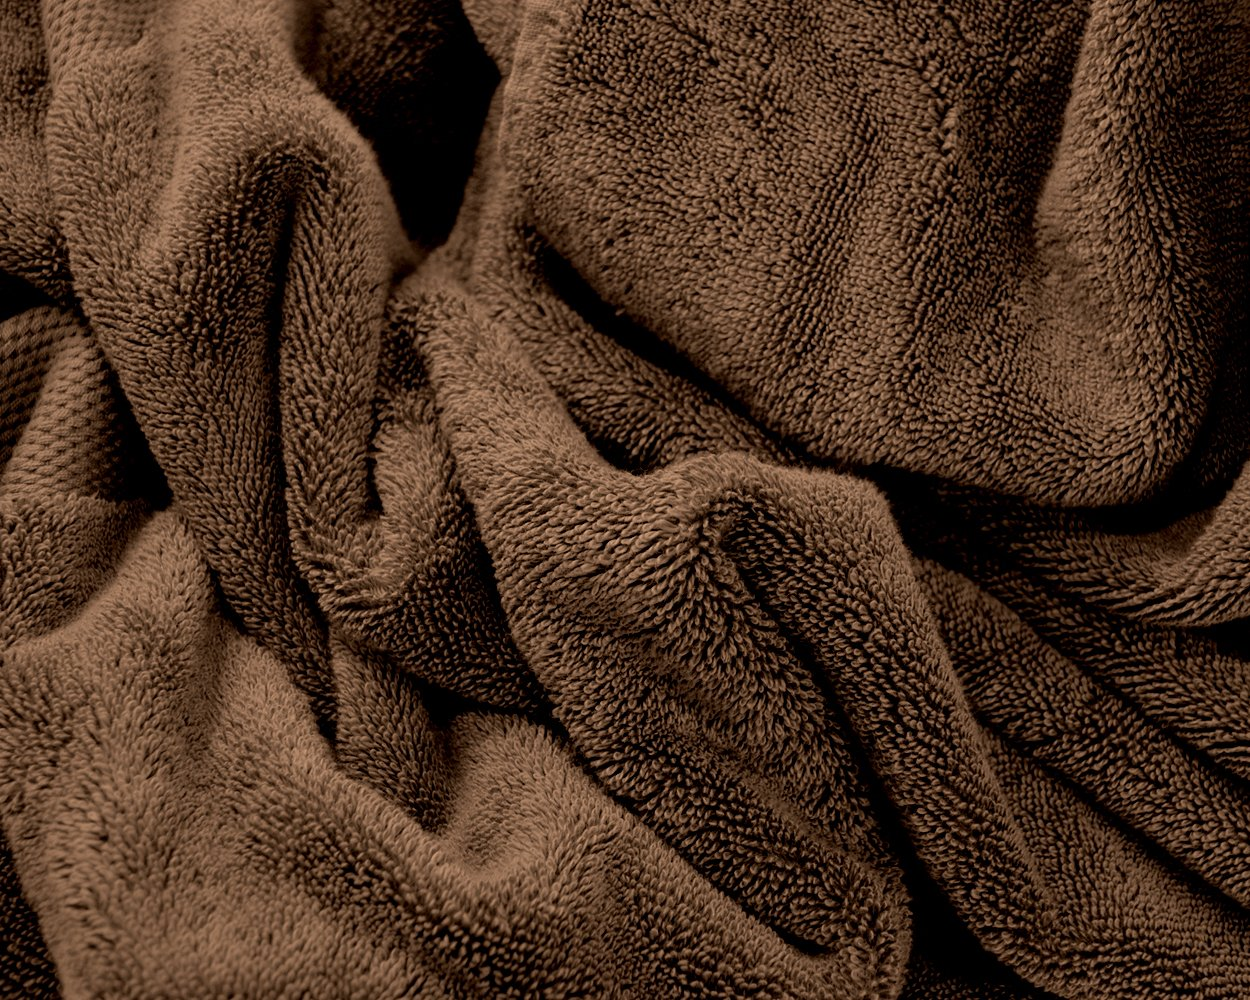 Cotton /& Calm Exquisitely Plush and Soft Extra Large Bath Towel Premium 100/% Combed Cotton Oversized Luxury Bath Sheet Beach Towel Pool Towel Chocolate//Dark Brown, 35 x 70, Set of 1